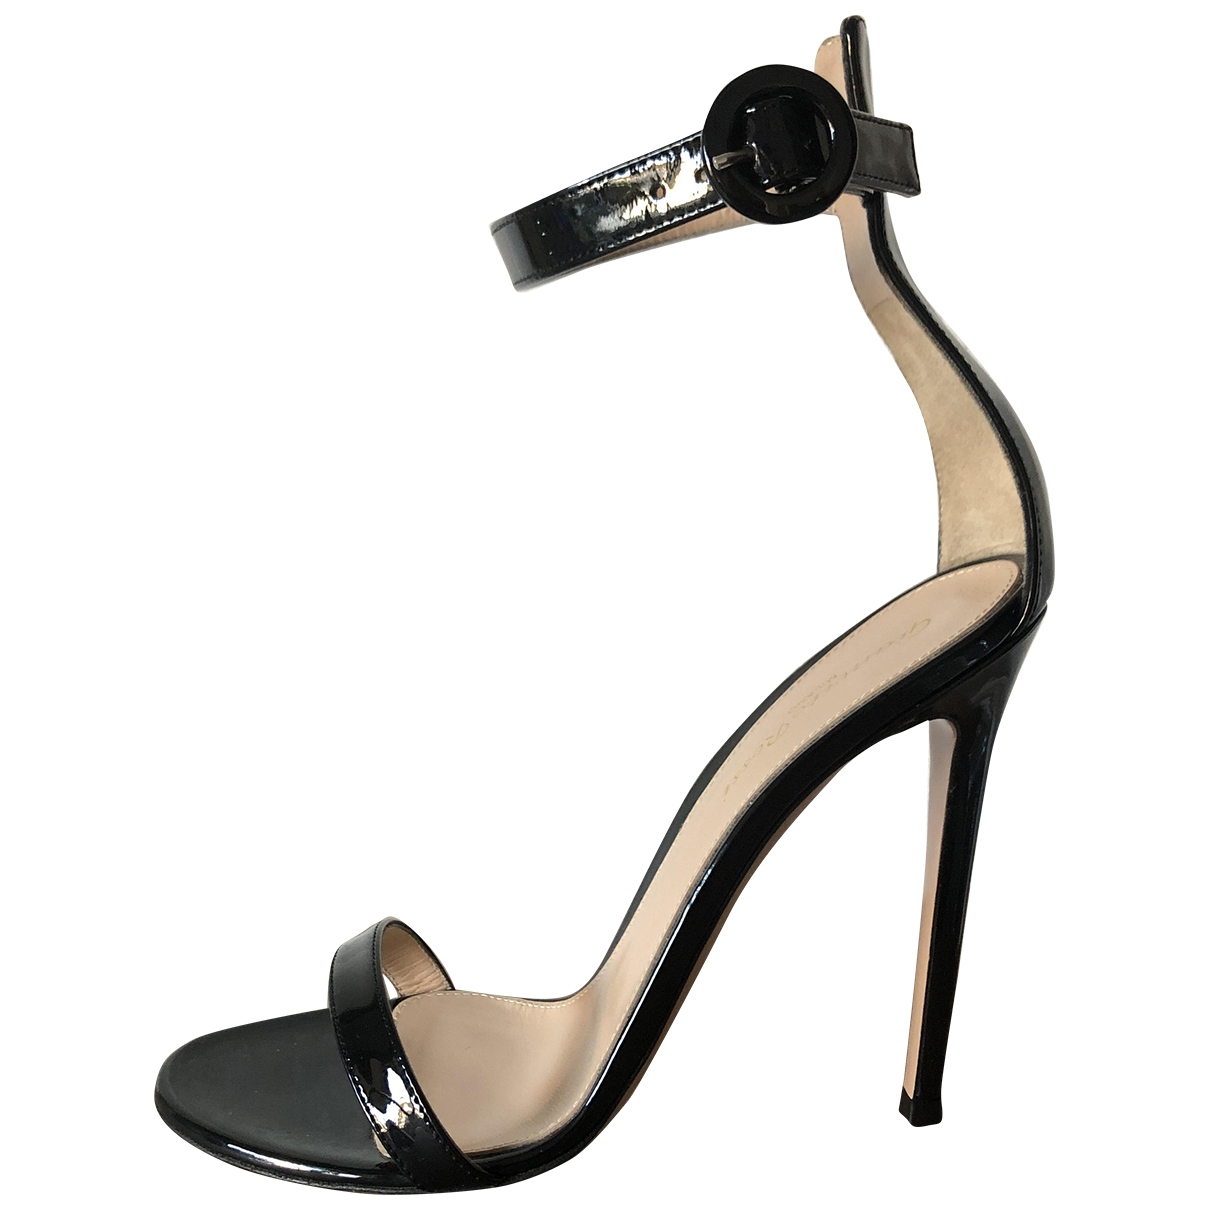 Gianvito Rossi Portofino Black Patent leather Sandals for Women 38 EU